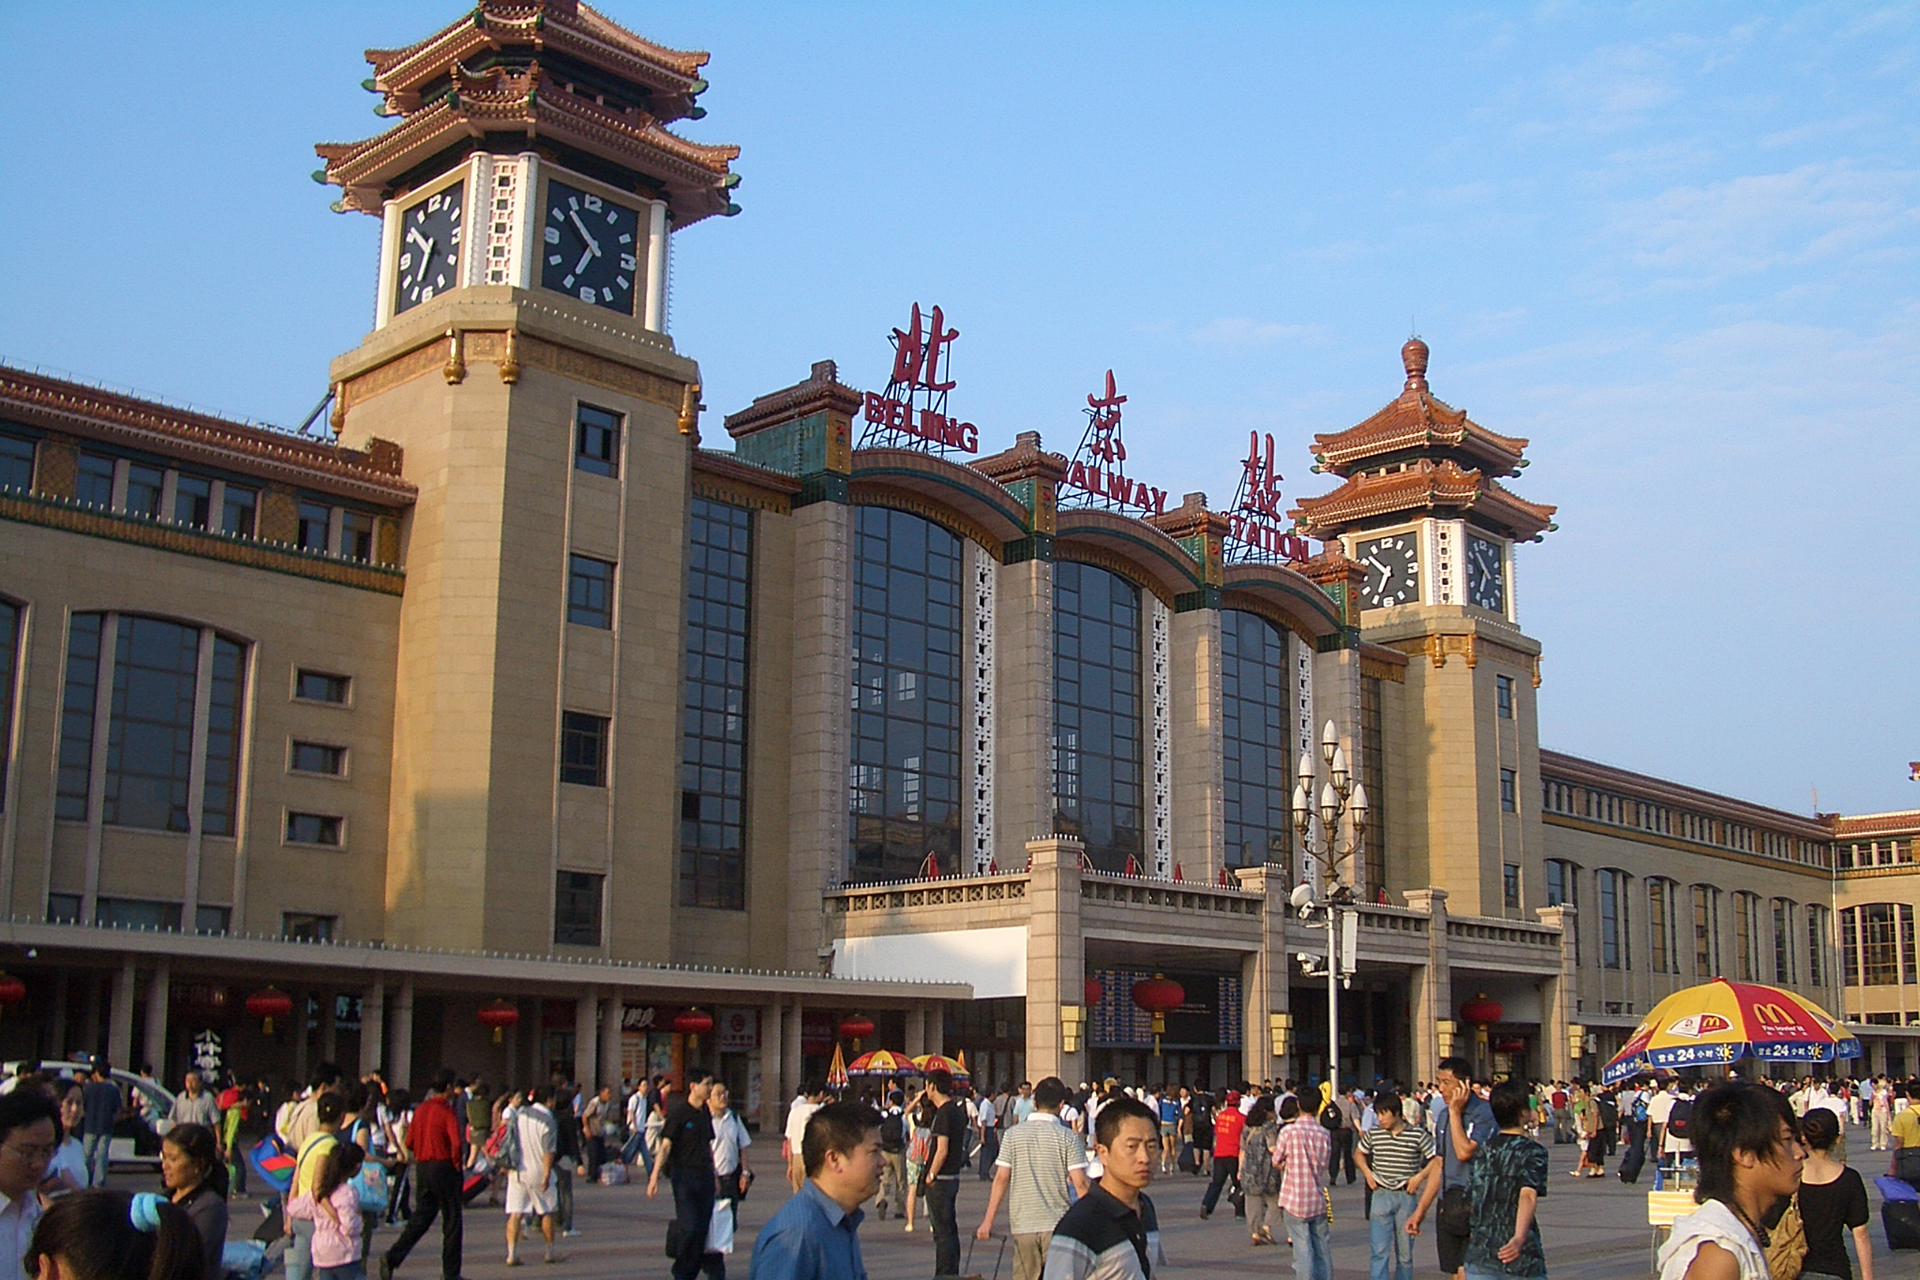 Bahnhof in Peking